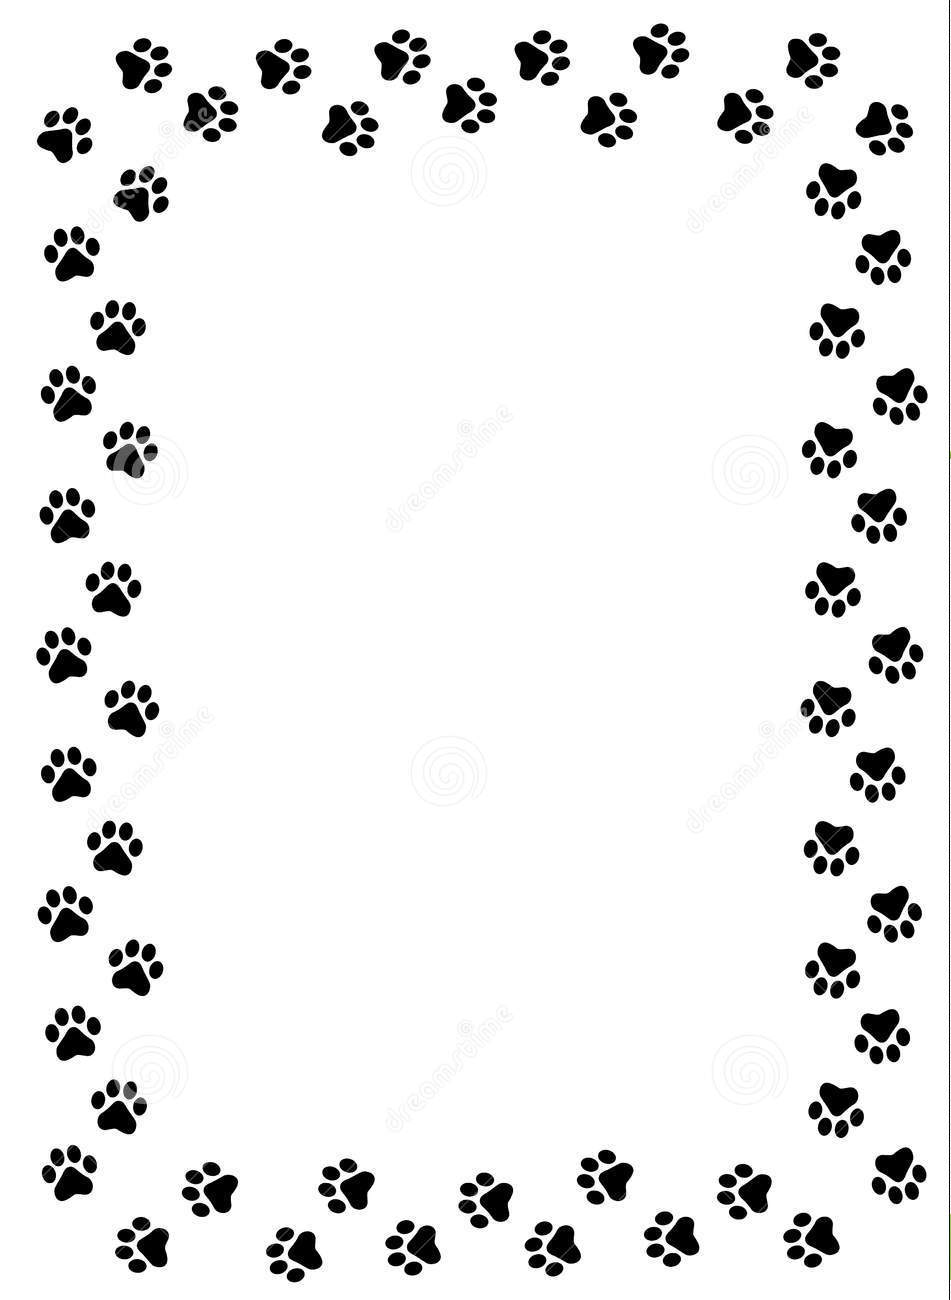 cat paw clipart hd dog paw border clipart cats wallpaper hd imagejpg 951x1300